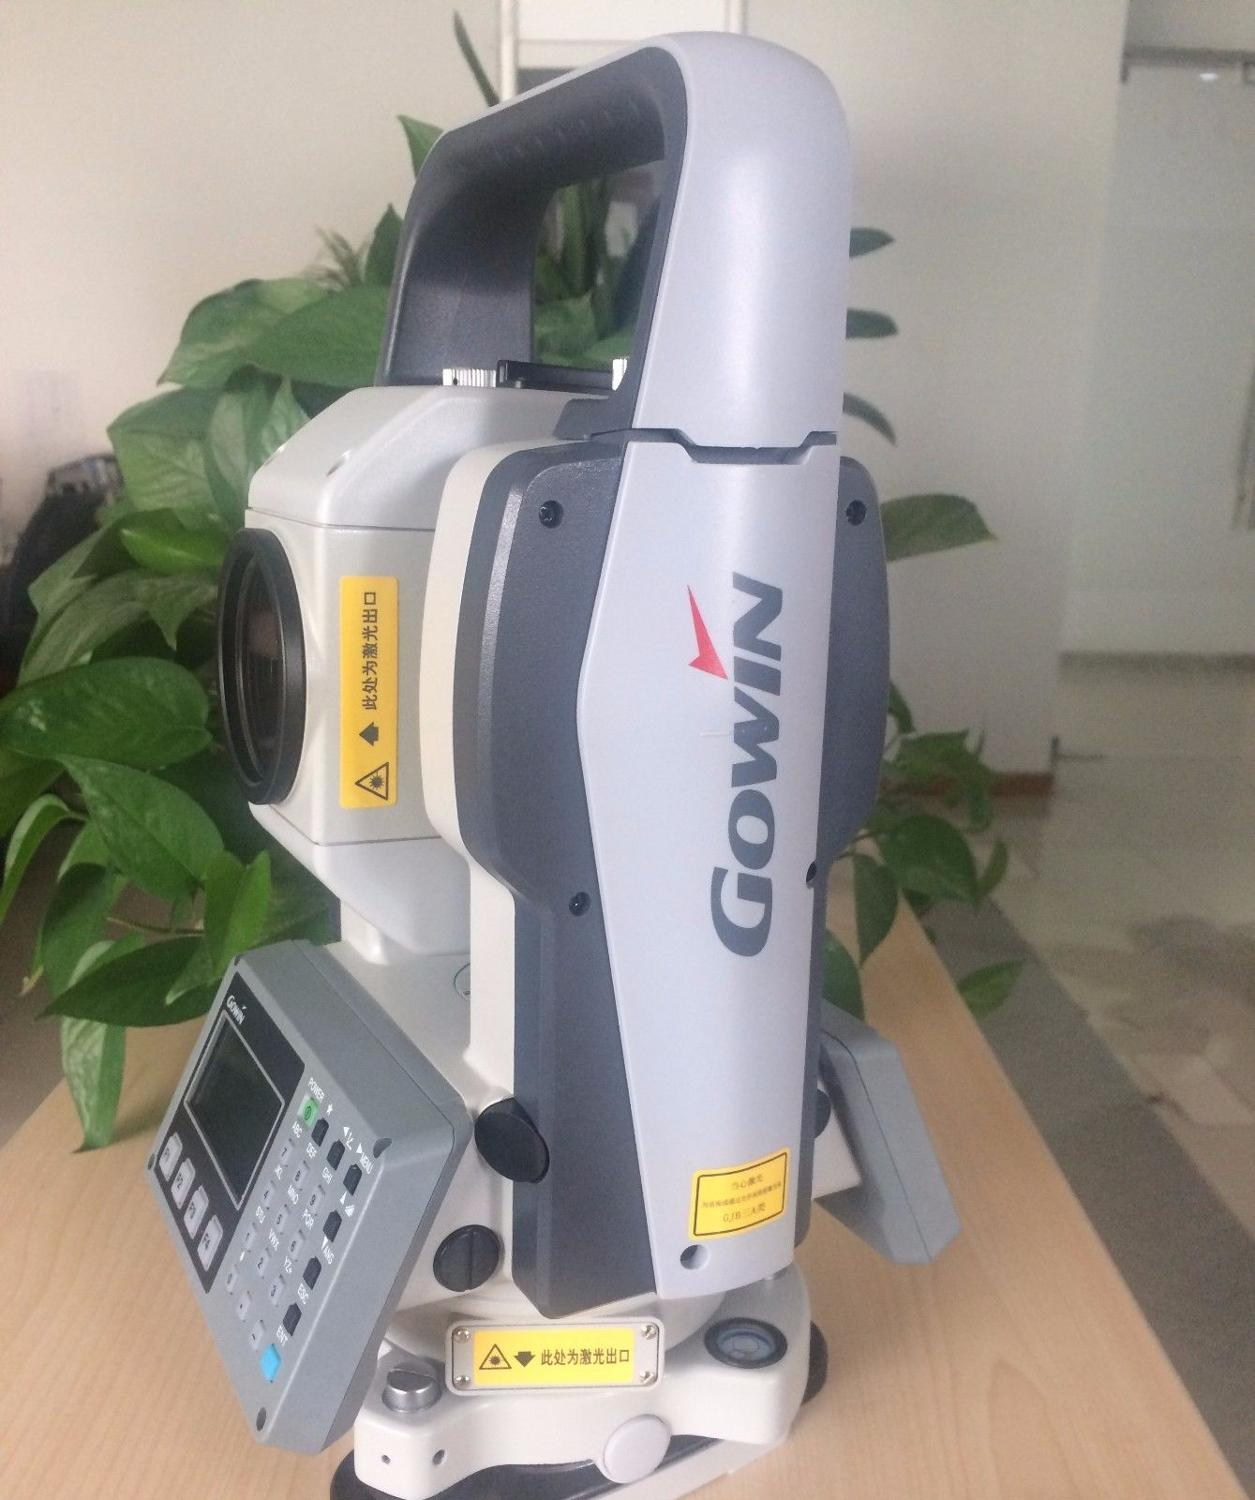 New Gowin TKS 202N reflectorless total station